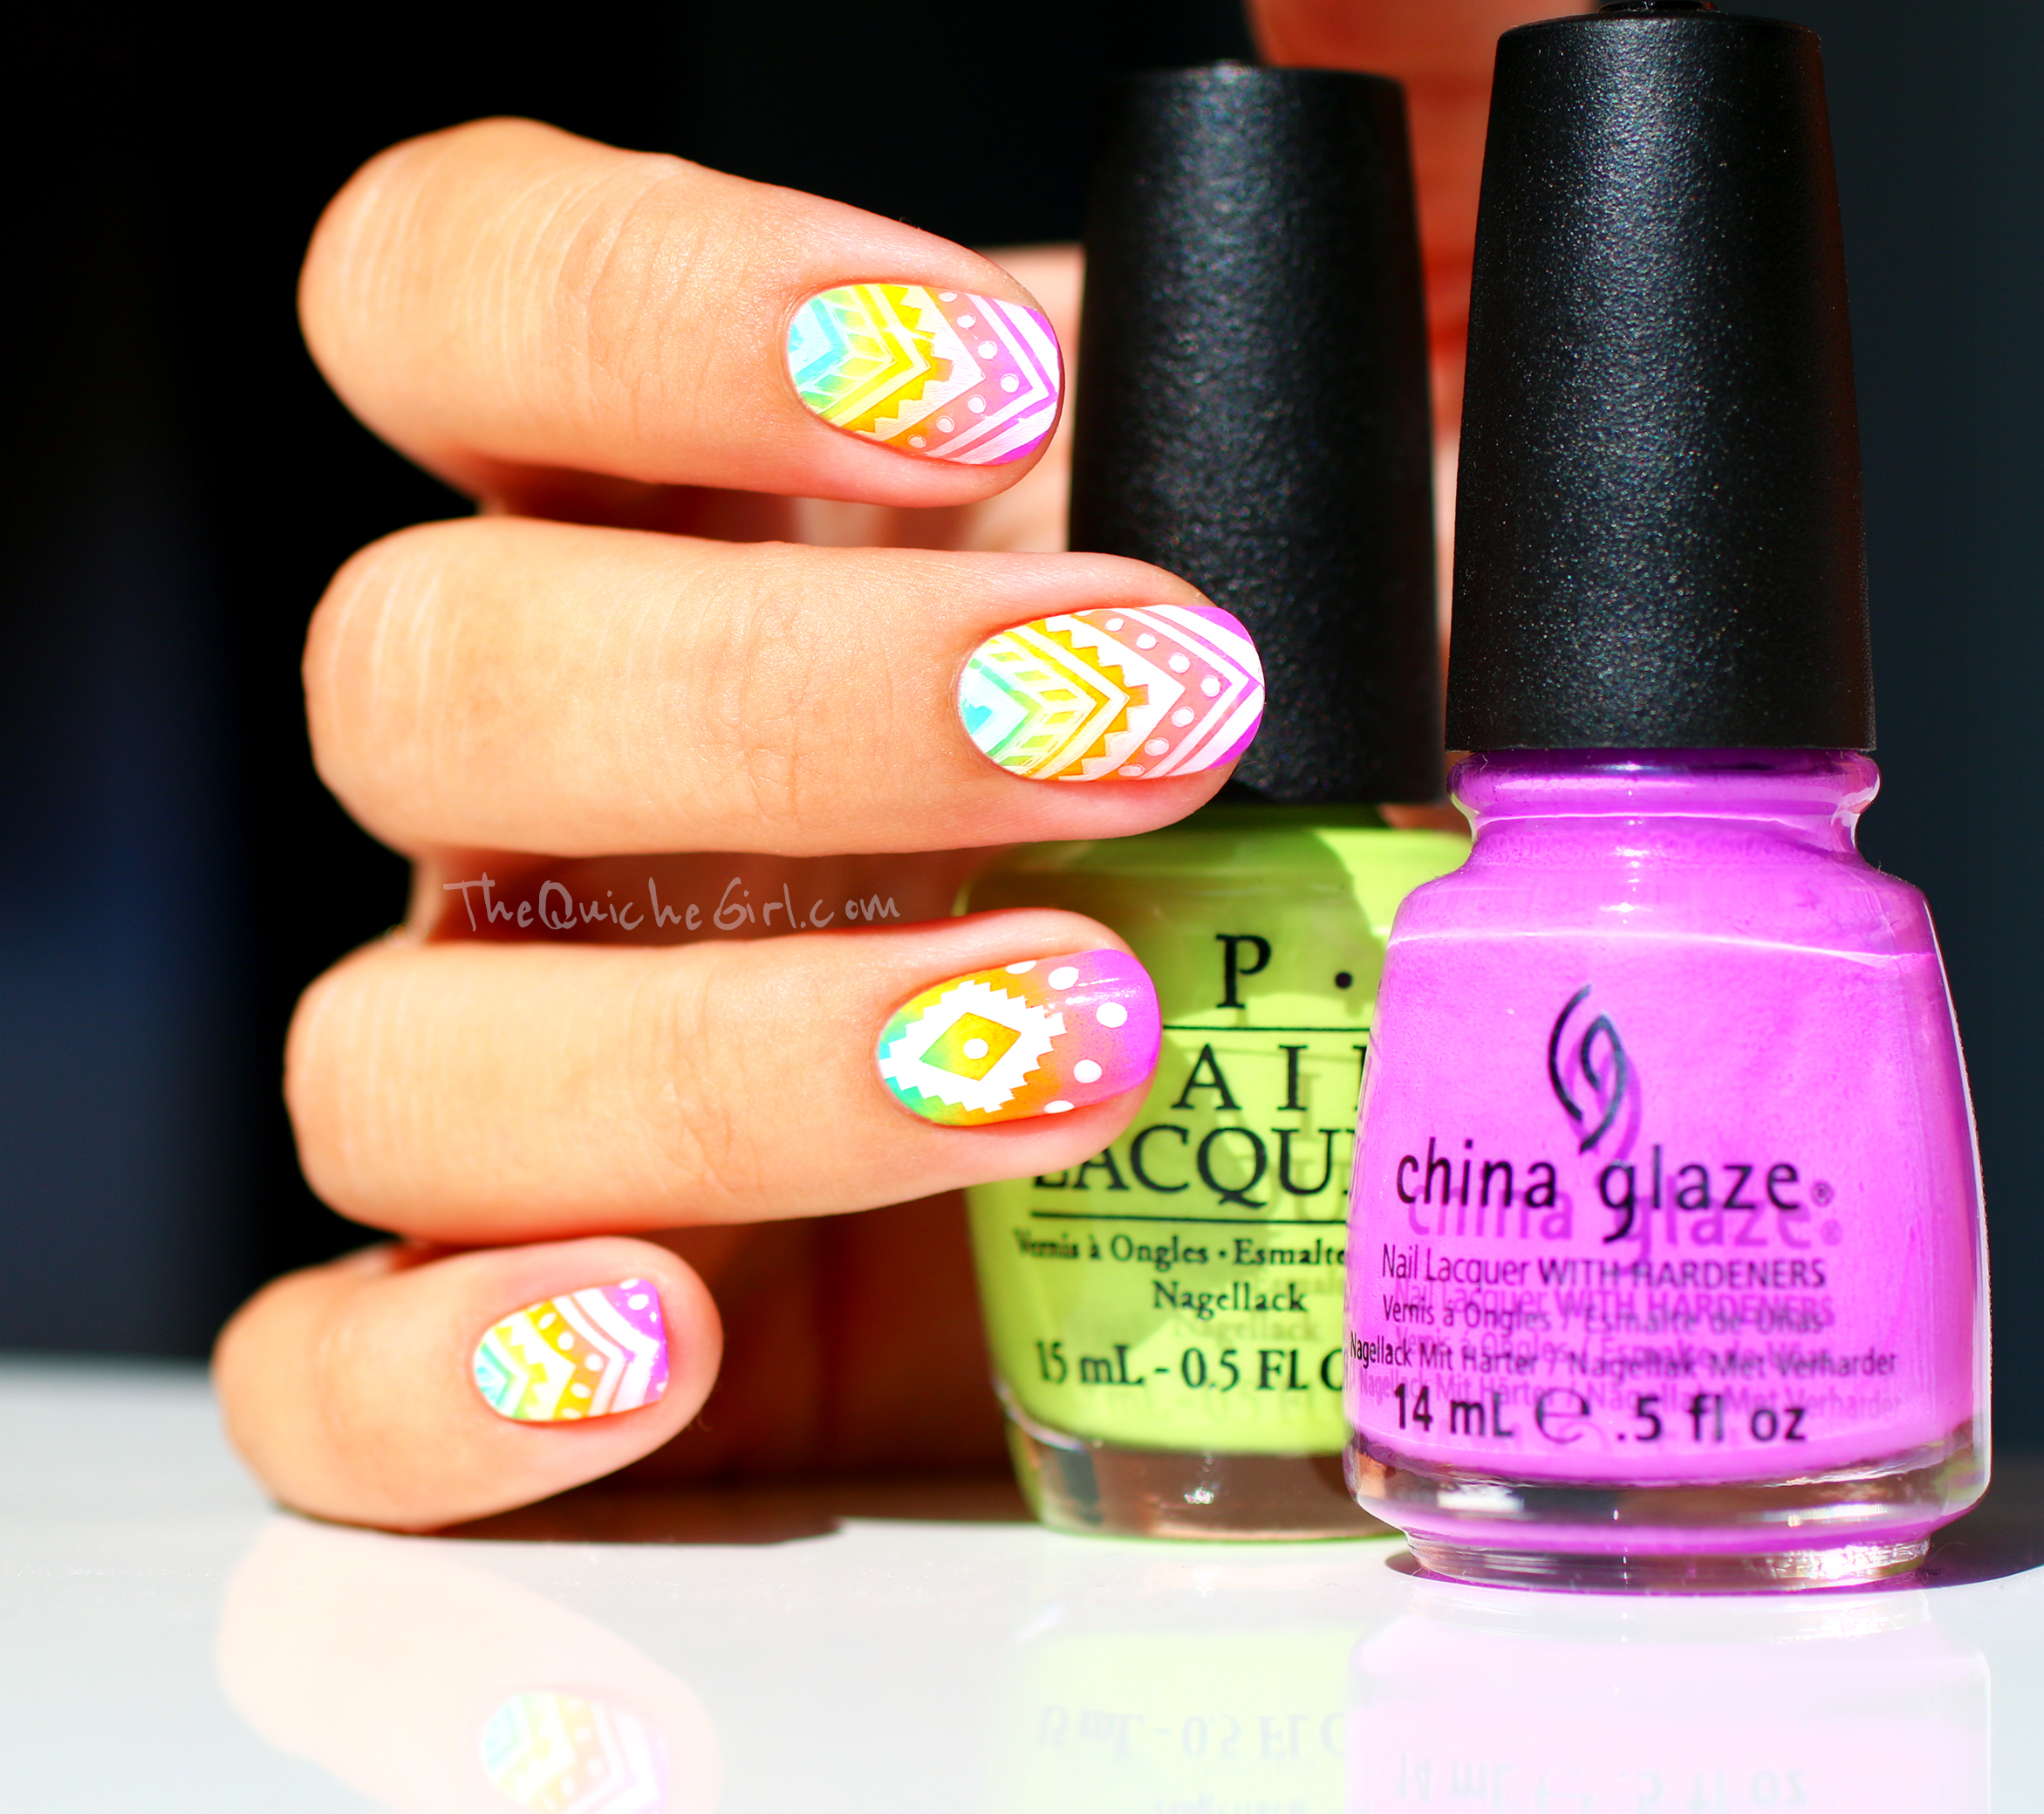 azteque, gradient, neon, stamping, China Glaze, QuicheGirl